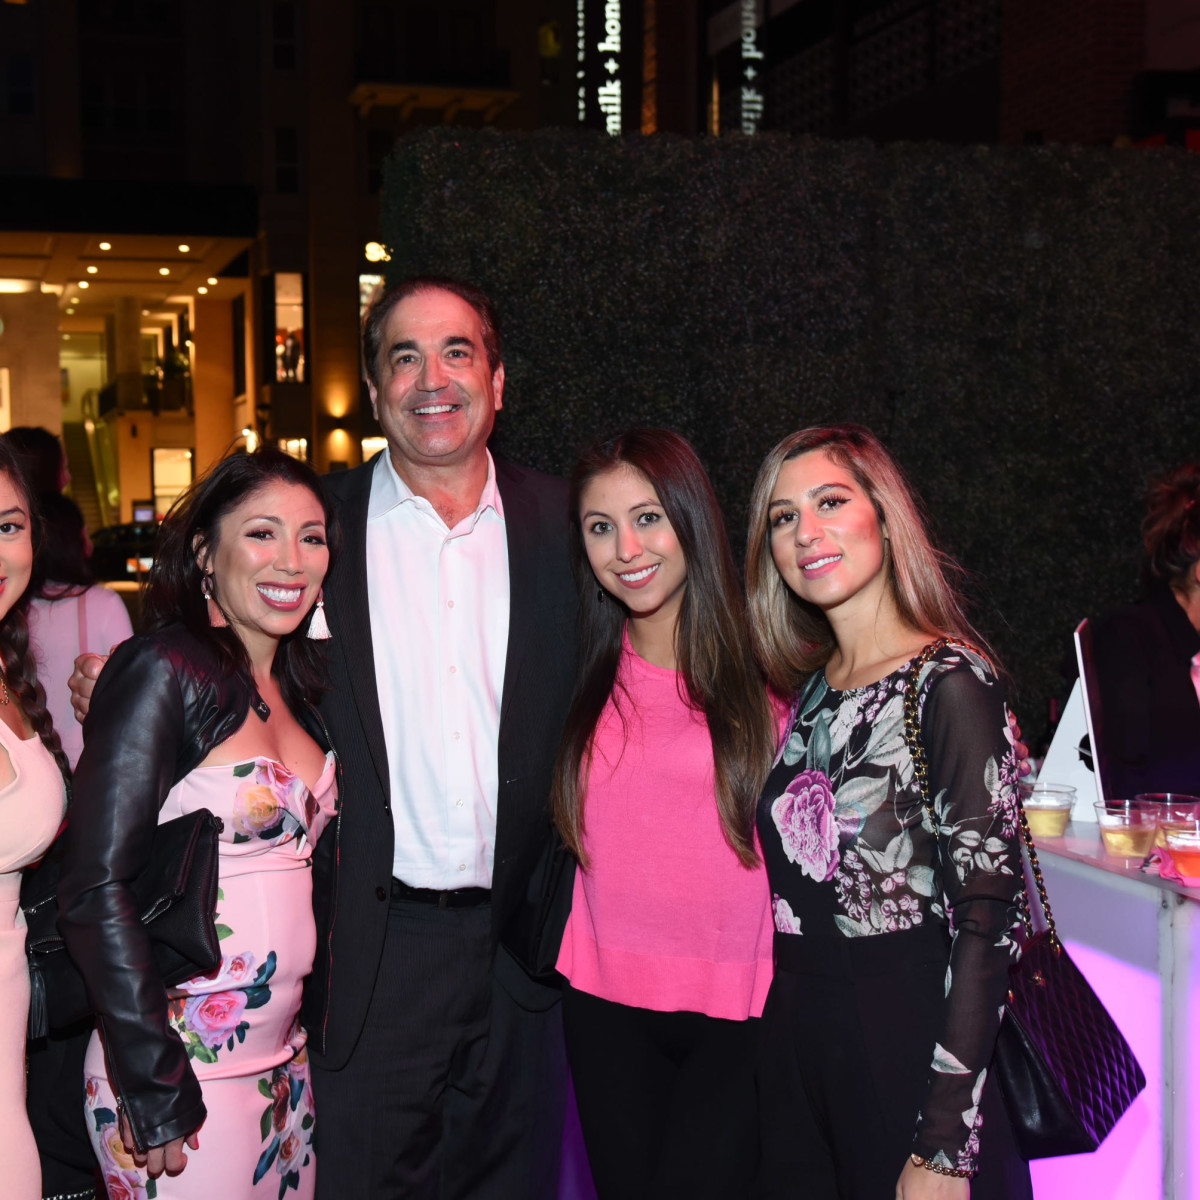 Pink Party 2018 West AveChelsea Nguyen. Crystal morris. Graham. Marianna prieto. Layal elsaadi.